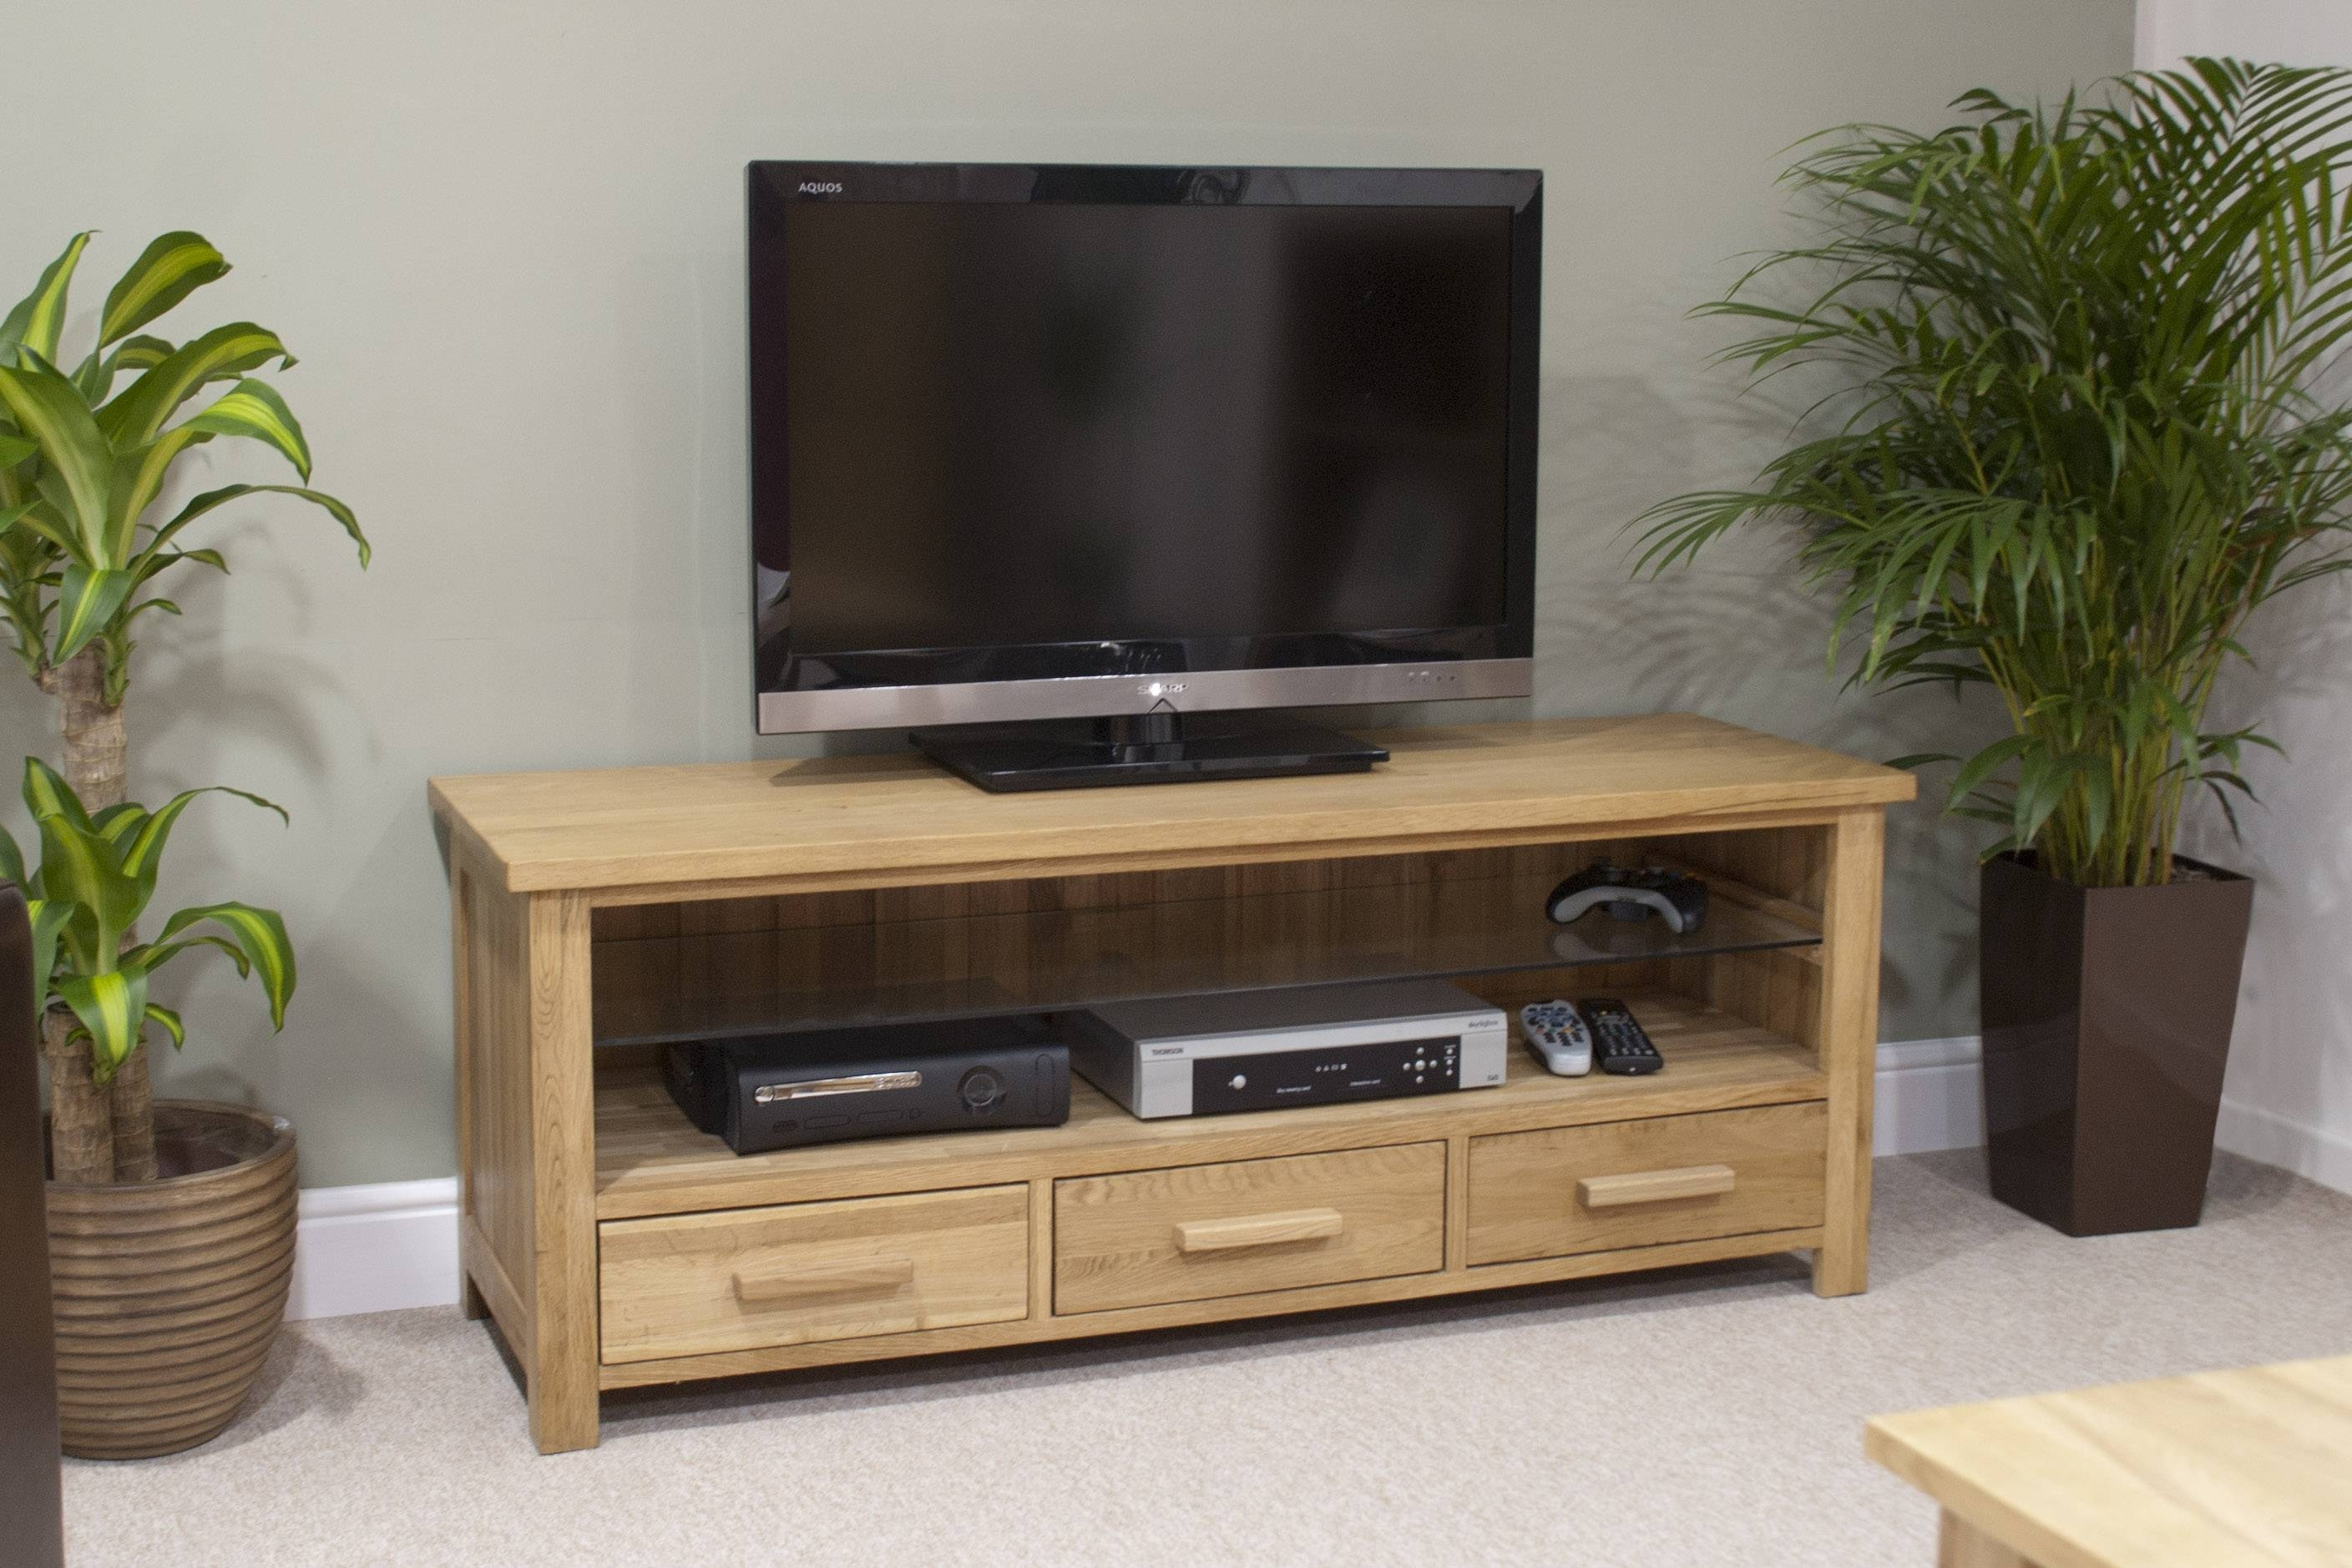 Fantastic Furniture | Pine And Oak | Furniture Workshoppe with regard to Pine Tv Unit (Image 5 of 15)